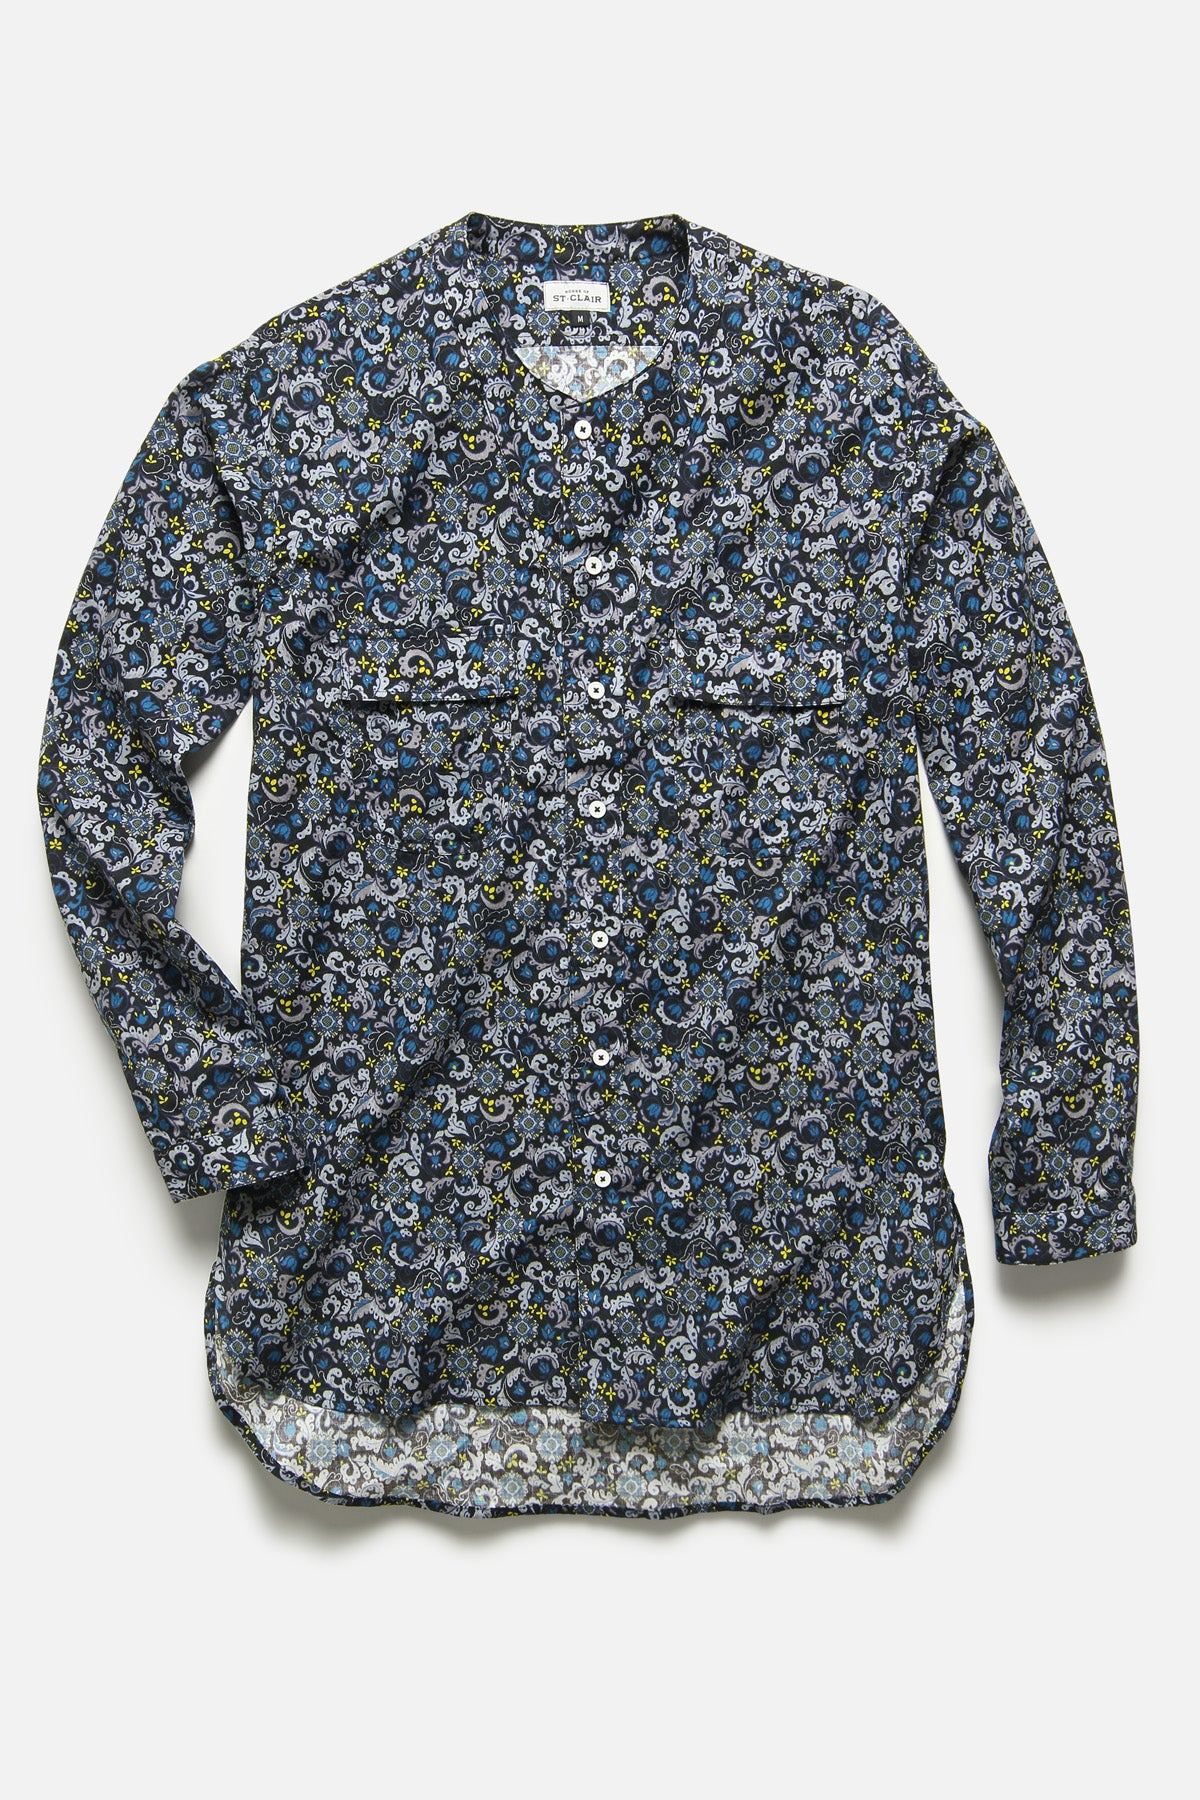 BUTTON DOWN TUNIC IN BLUE/BLACK FLORAL - Fortune Goods